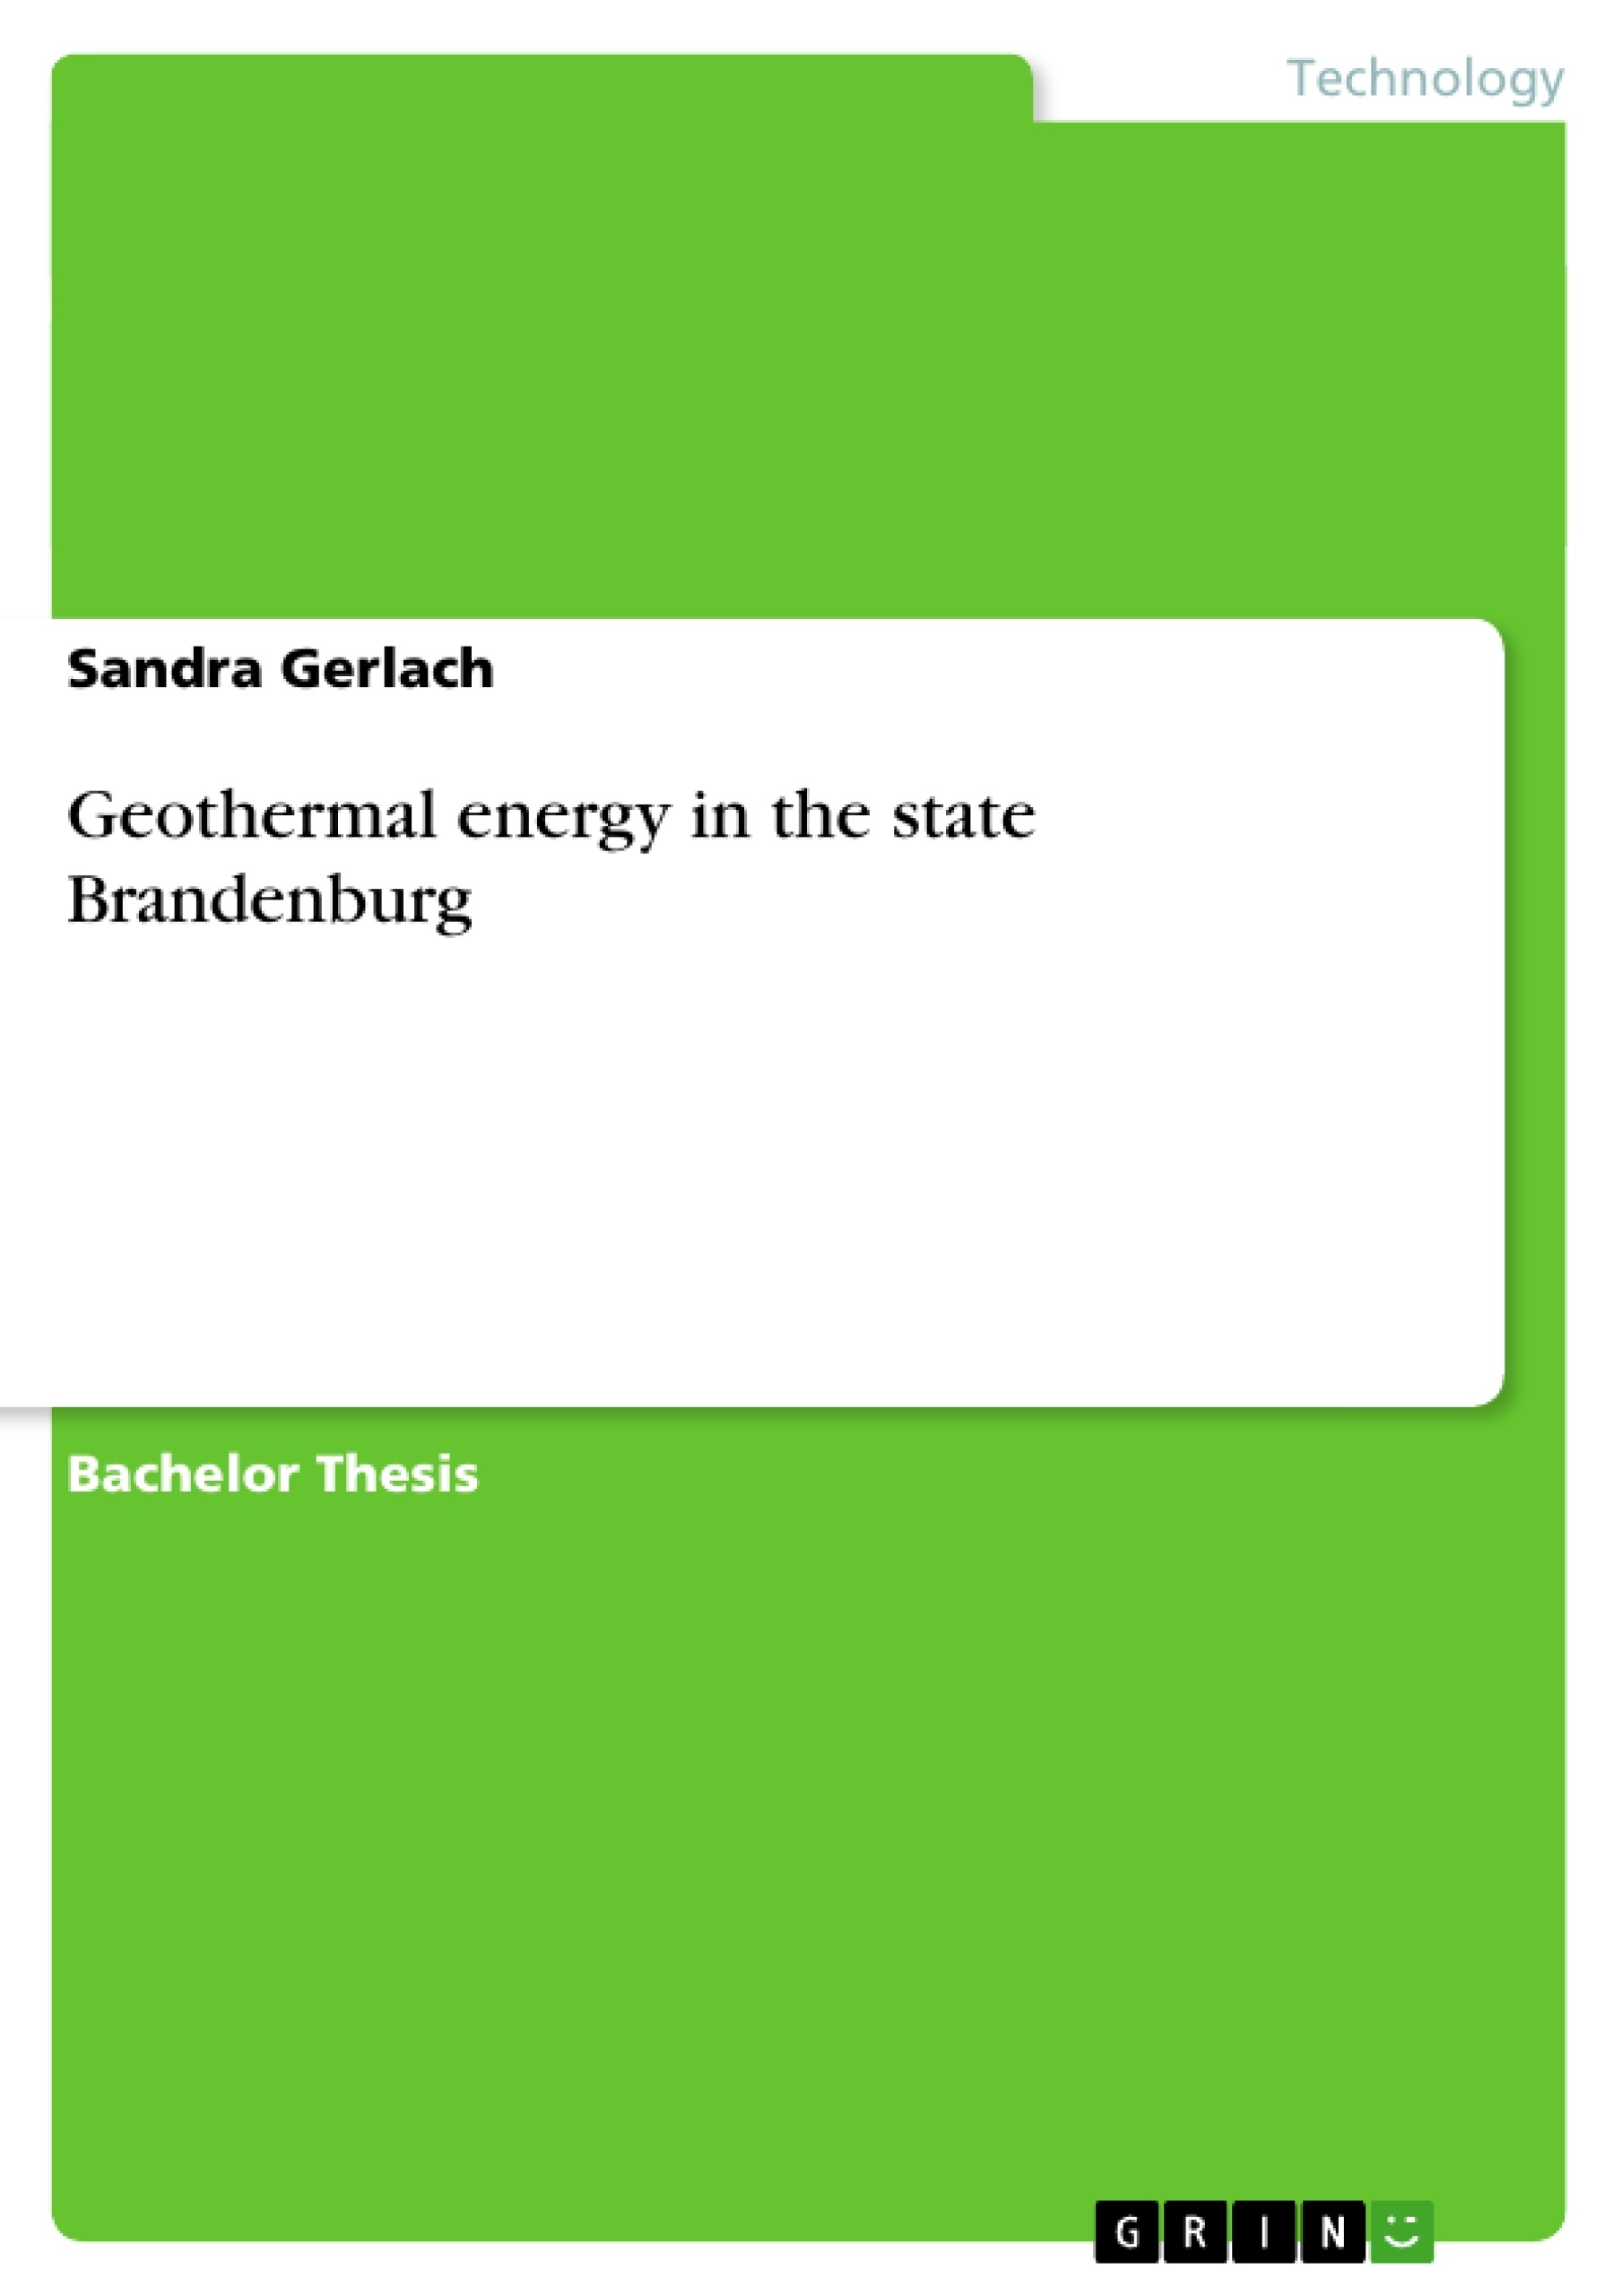 Title: Geothermal energy in the state Brandenburg